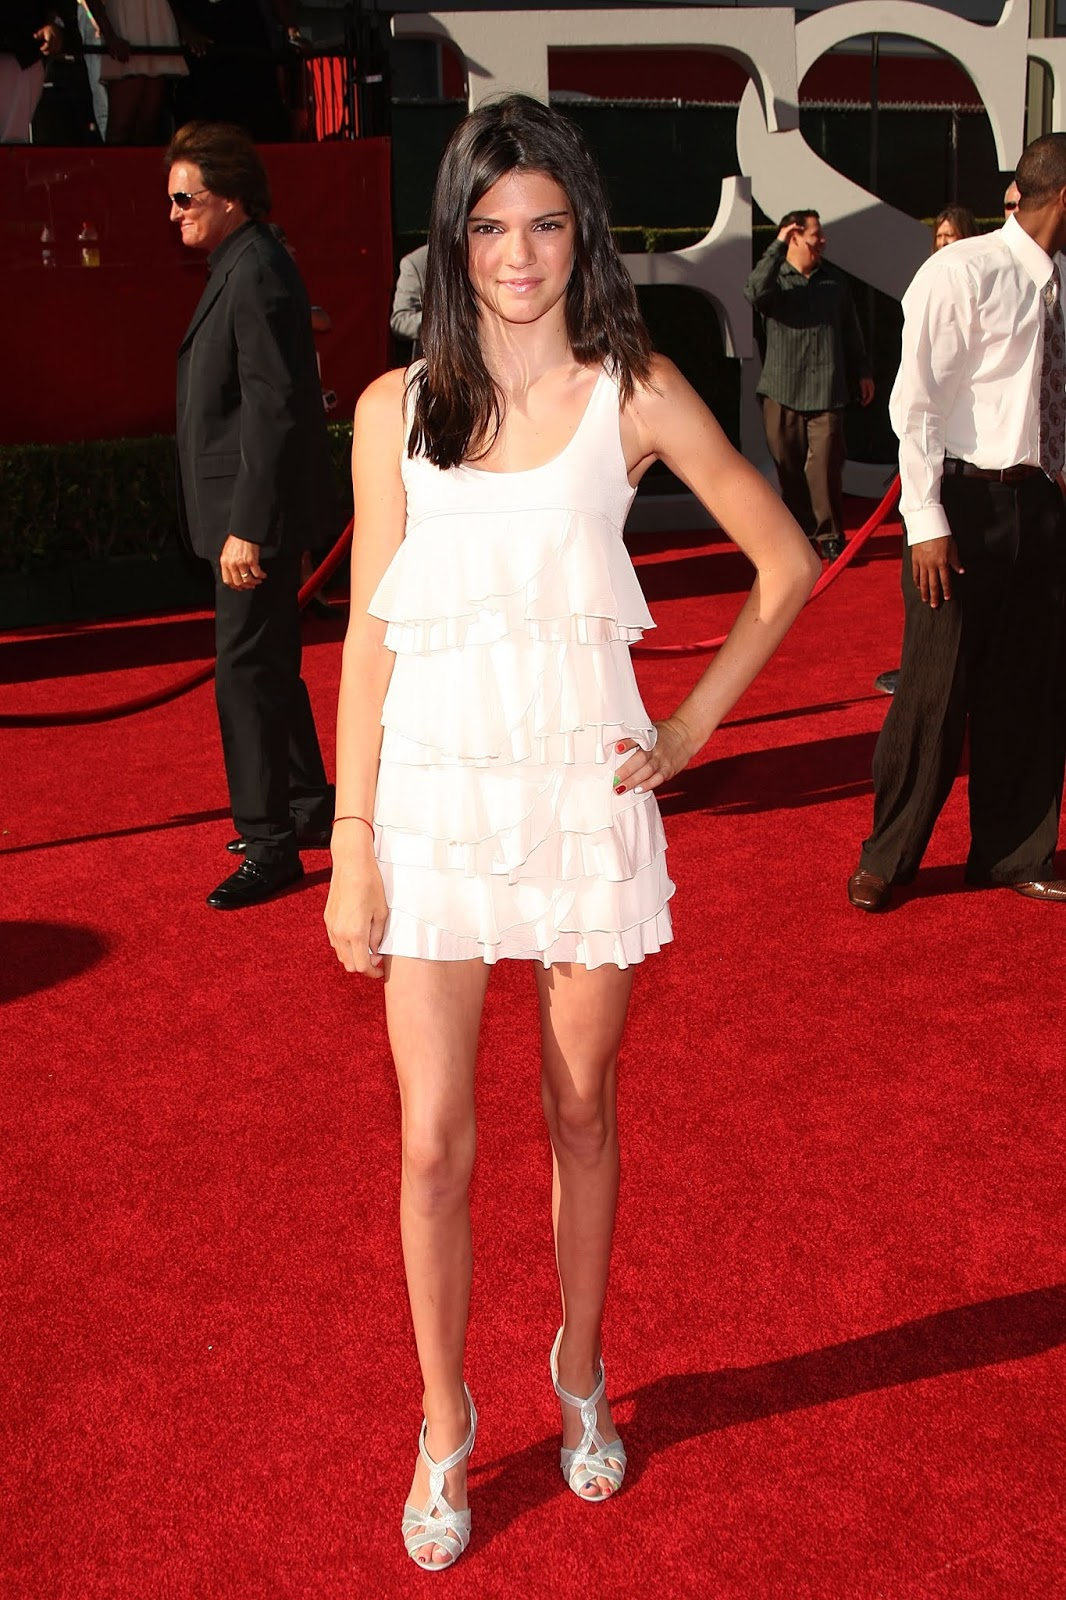 15-07-2009 17th Annual ESPY Awards-10